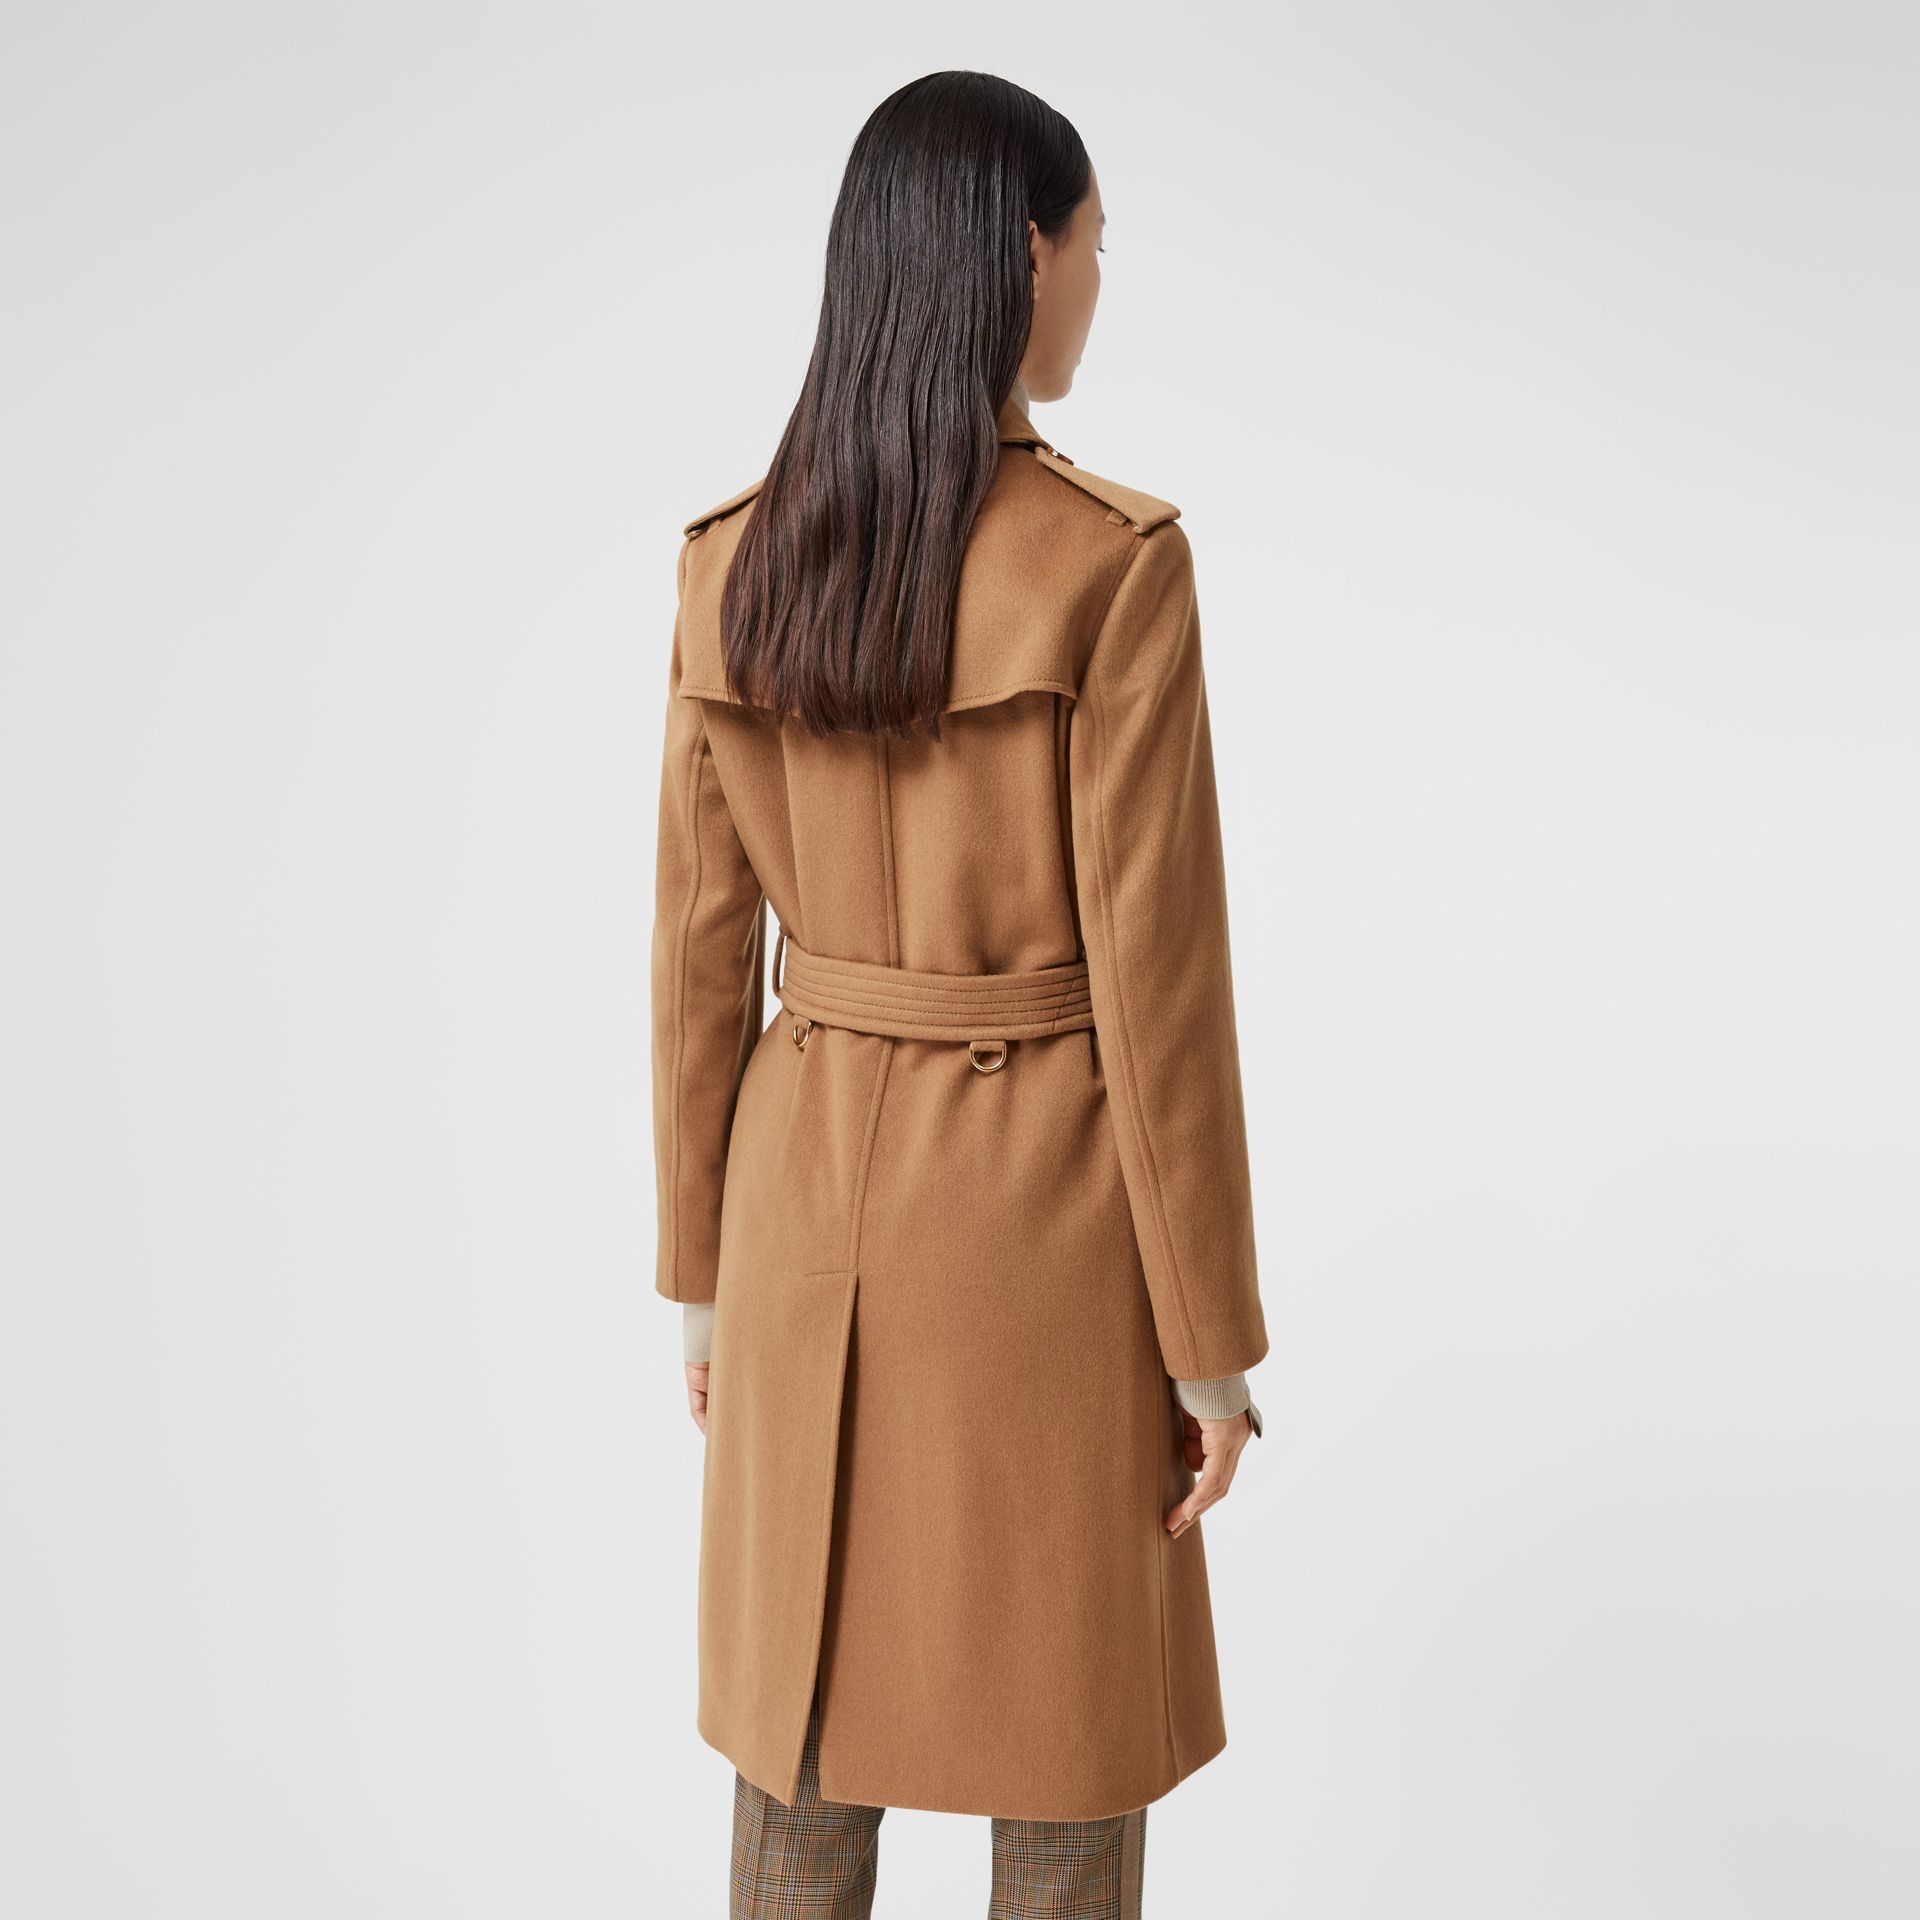 Cashmere Trench Coat in Bronze - Women | Burberry Hong Kong S.A.R. - gallery image 2